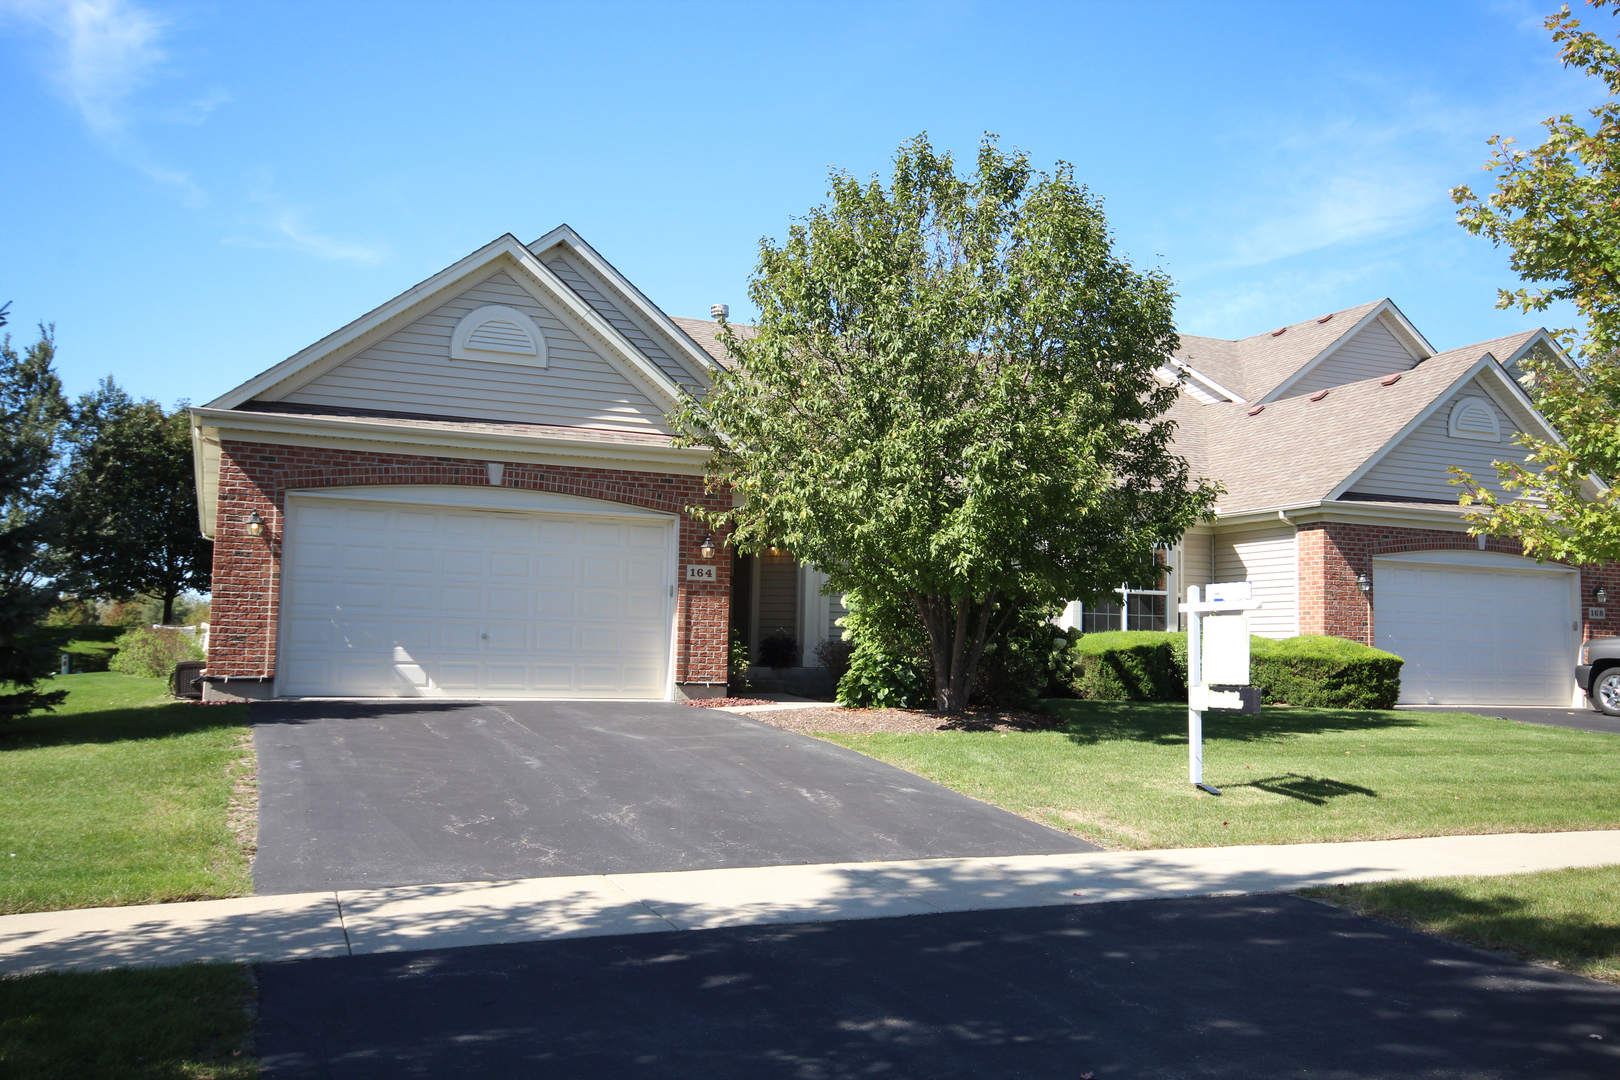 Photo for 164 Valencia Parkway, Gilberts, IL 60136 (MLS # 10525926)